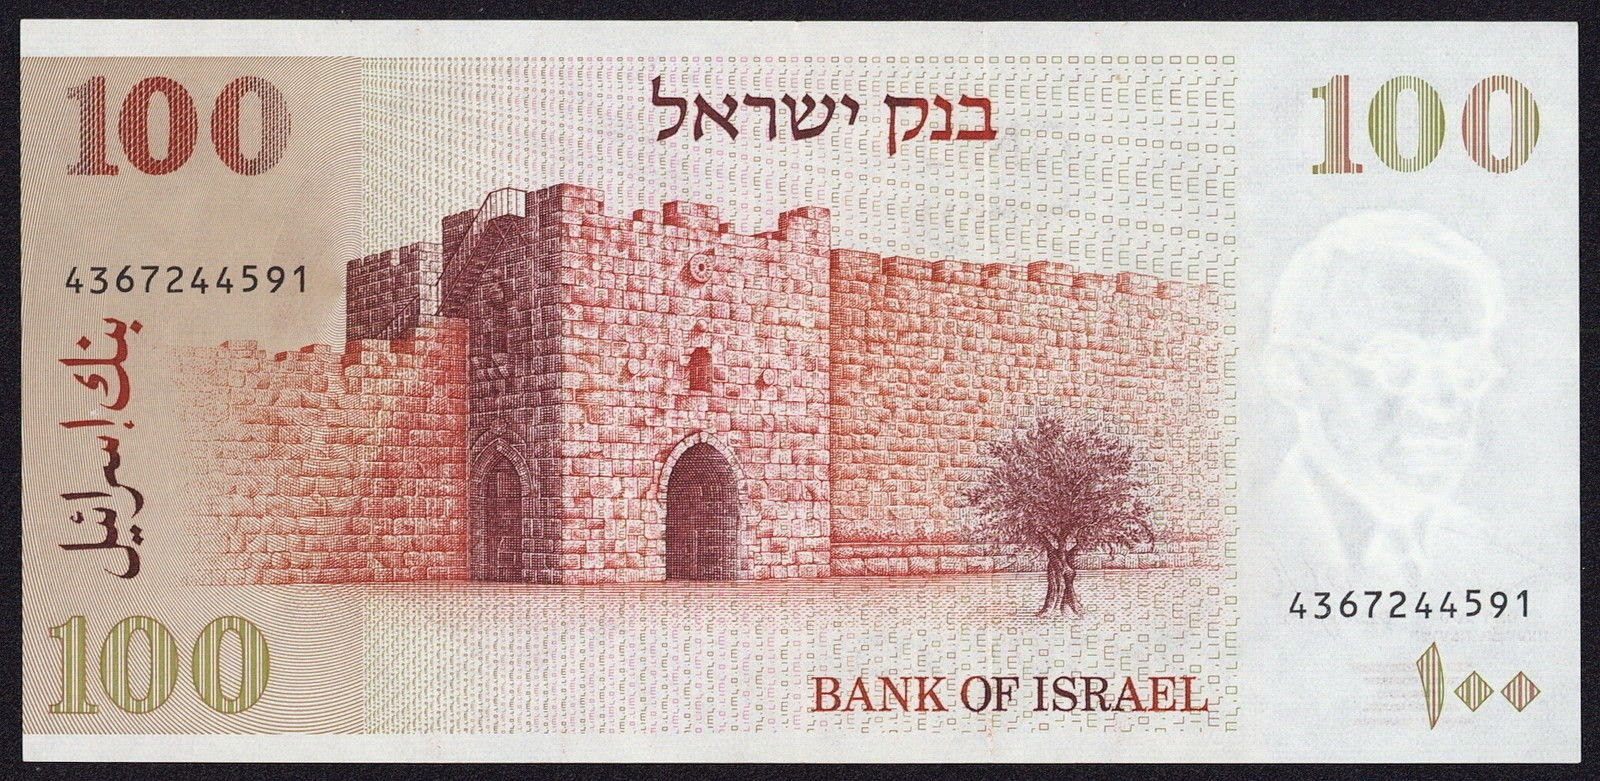 Israeli currency money 100 Sheqalim banknote 1979 Herod Gate in the Old City of Jerusalem